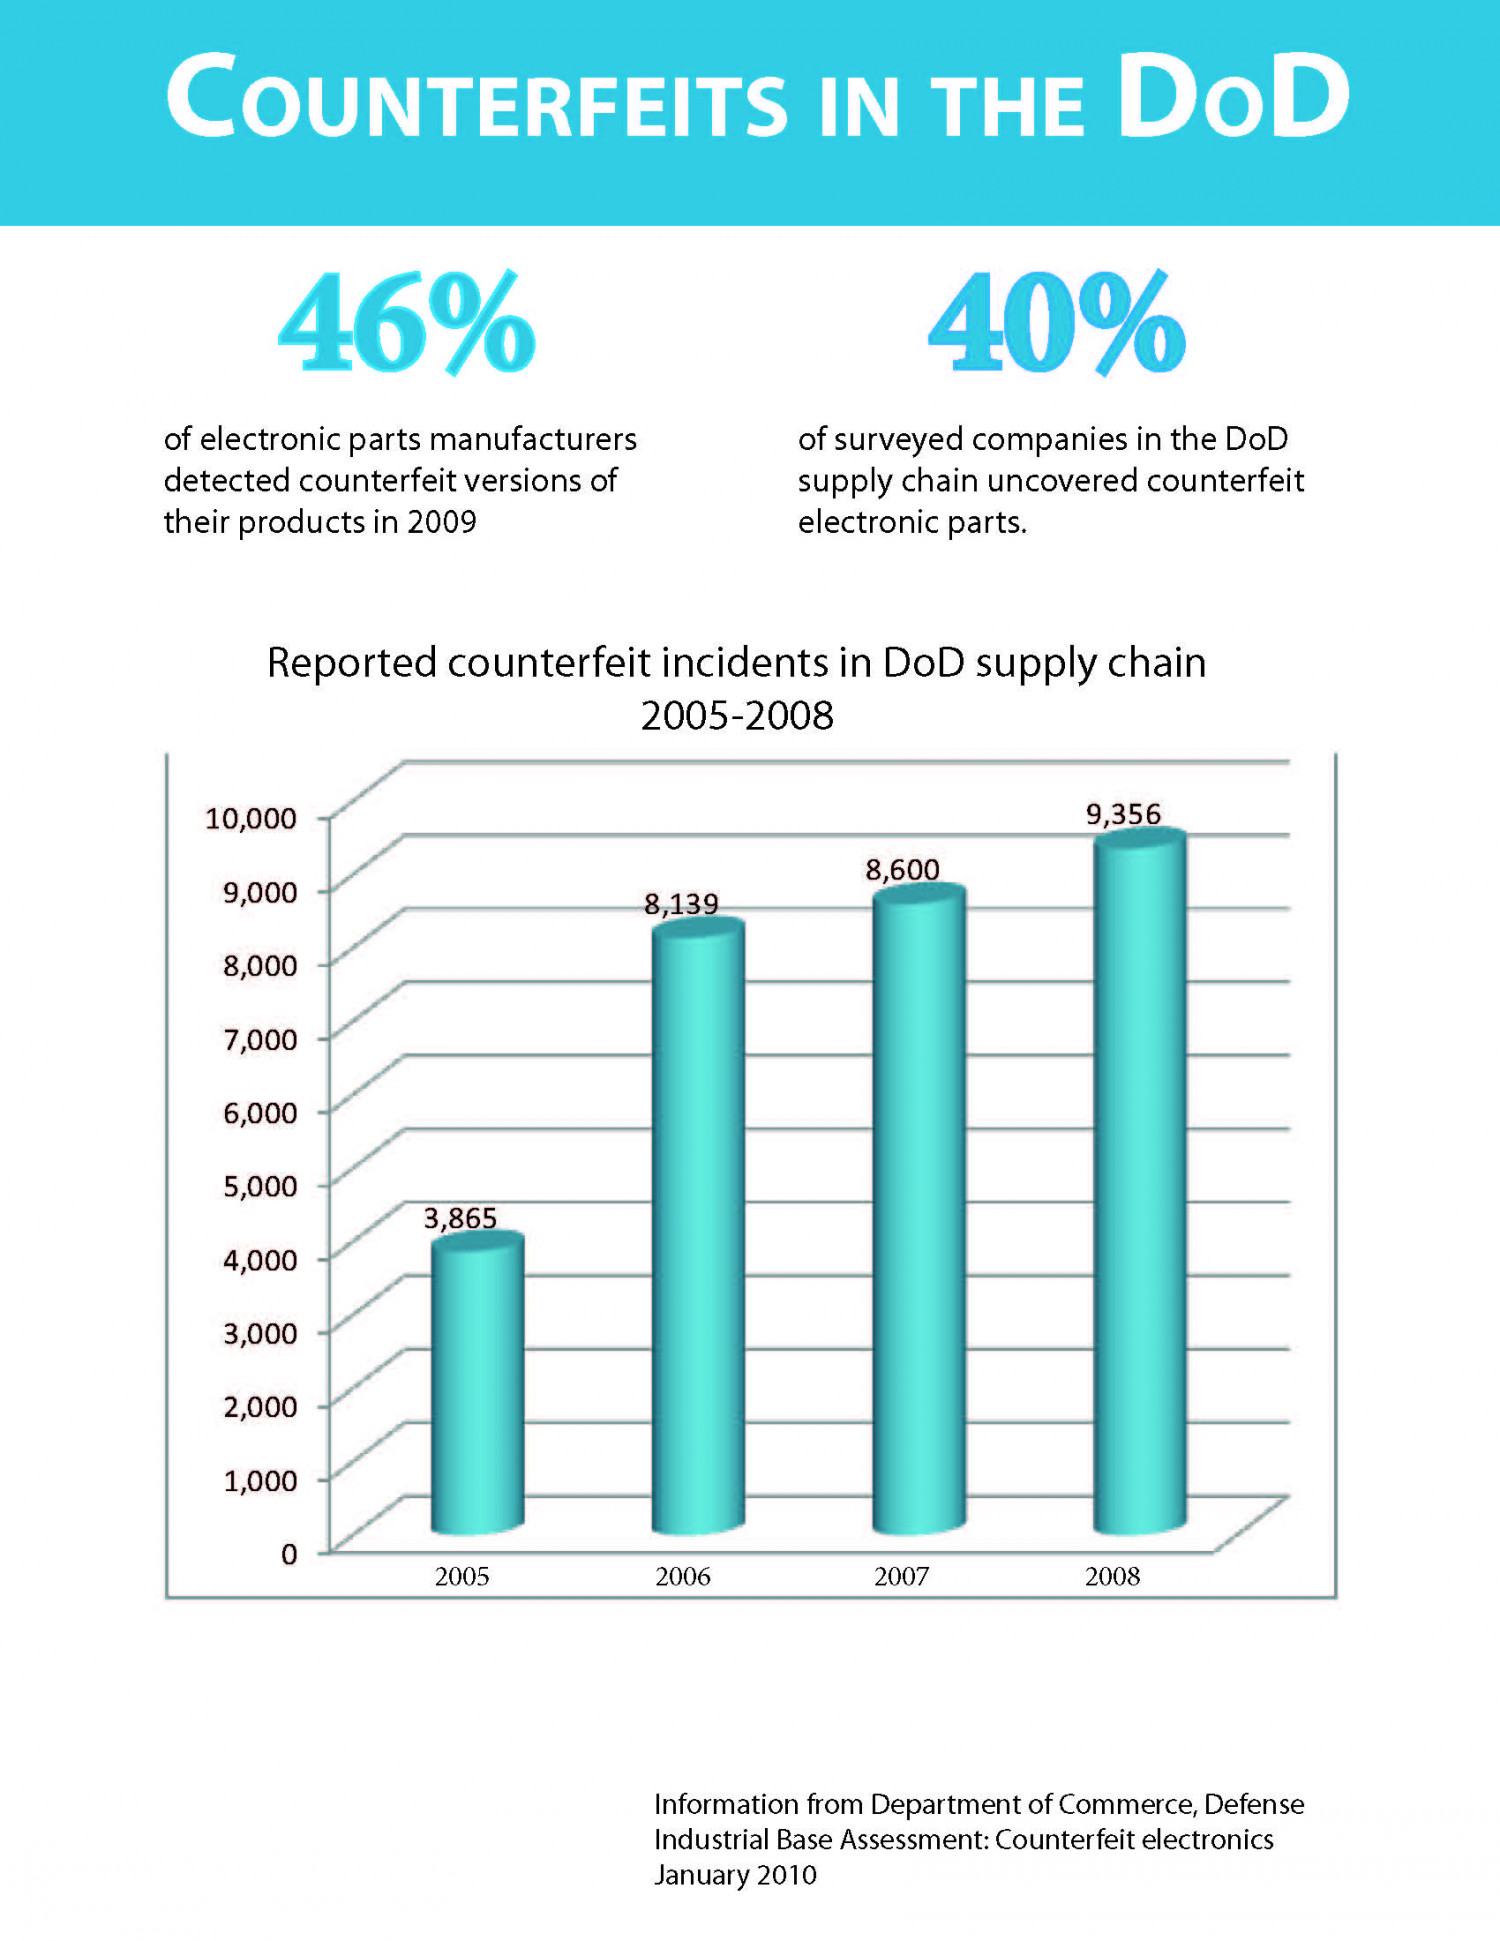 Counterfeits in the DoD Infographic